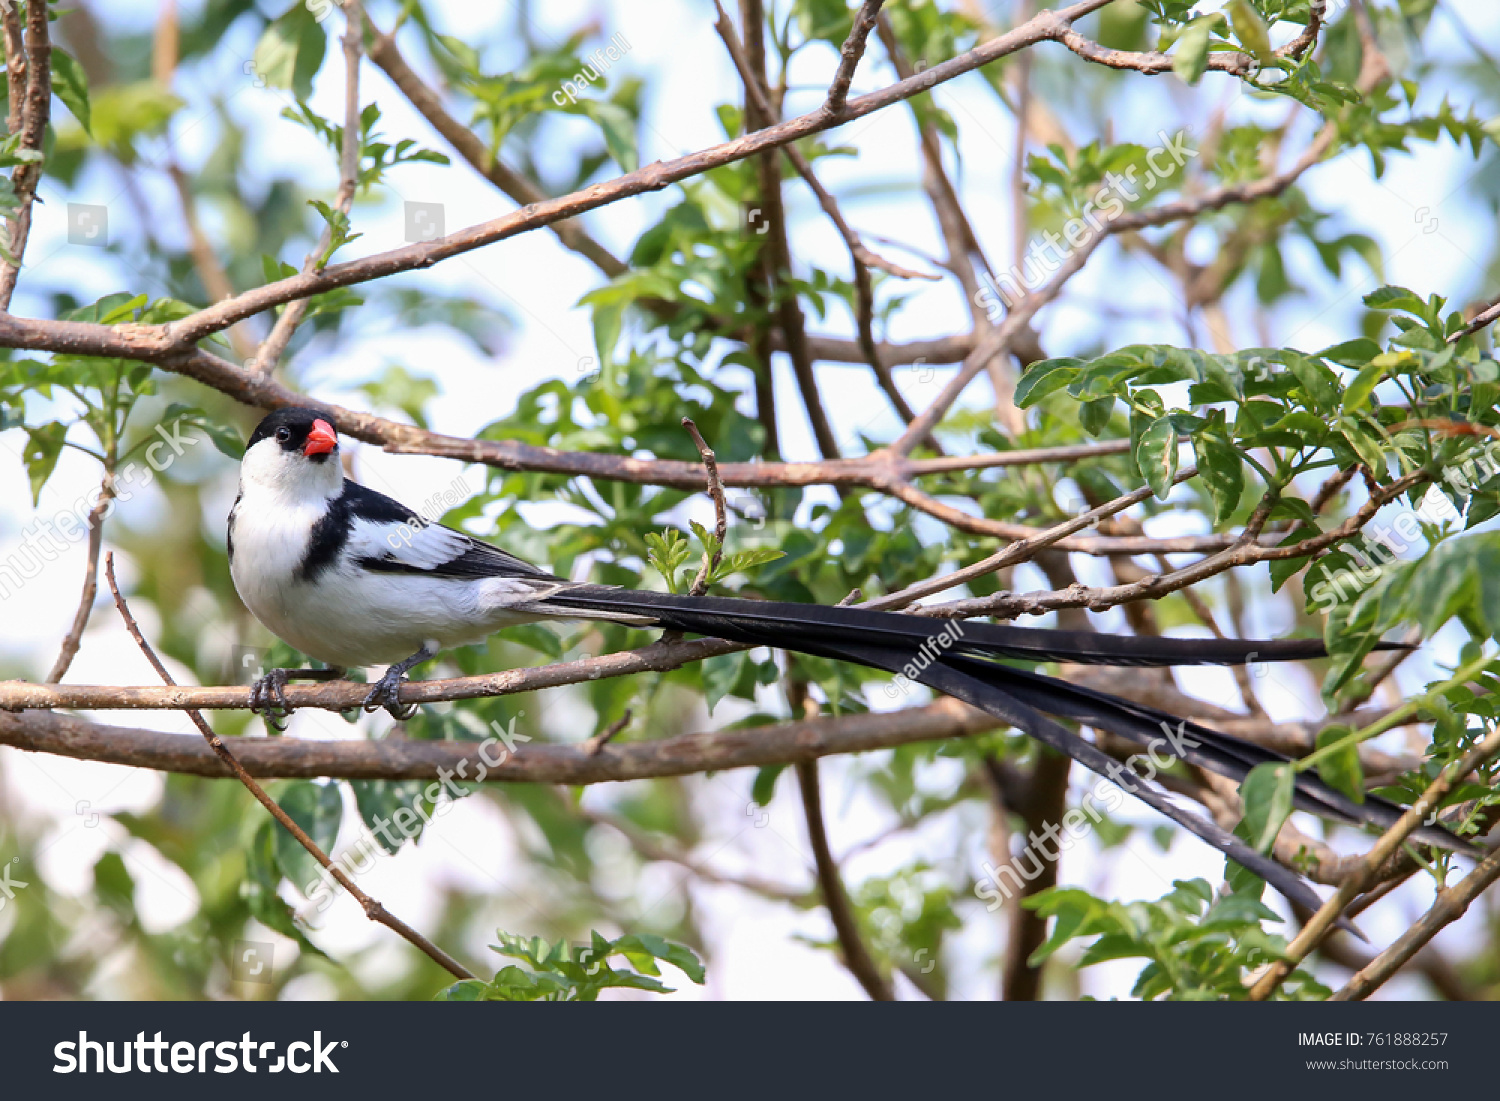 stock-photo-pin-tailed-whydah-bird-76188